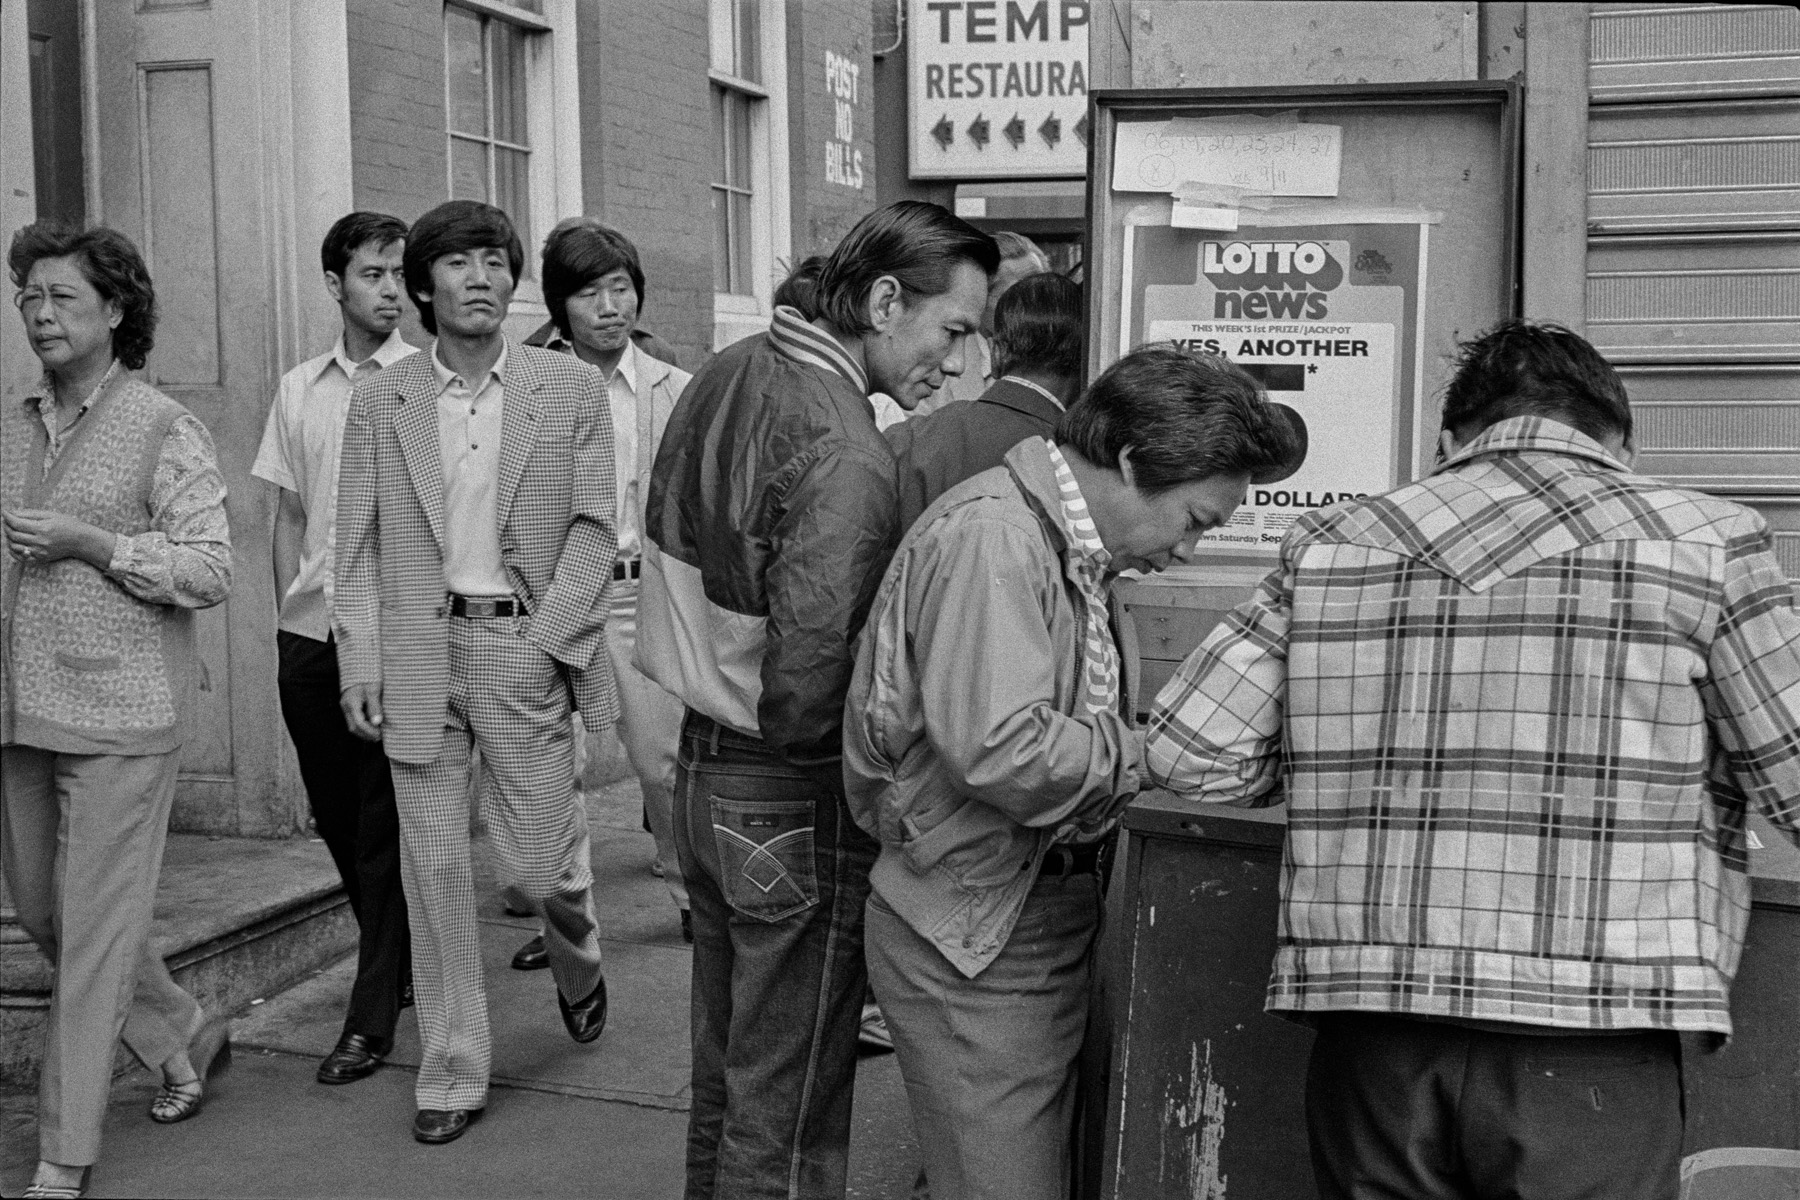 In front of 18 Bowery, New York Chinatown, 1982.